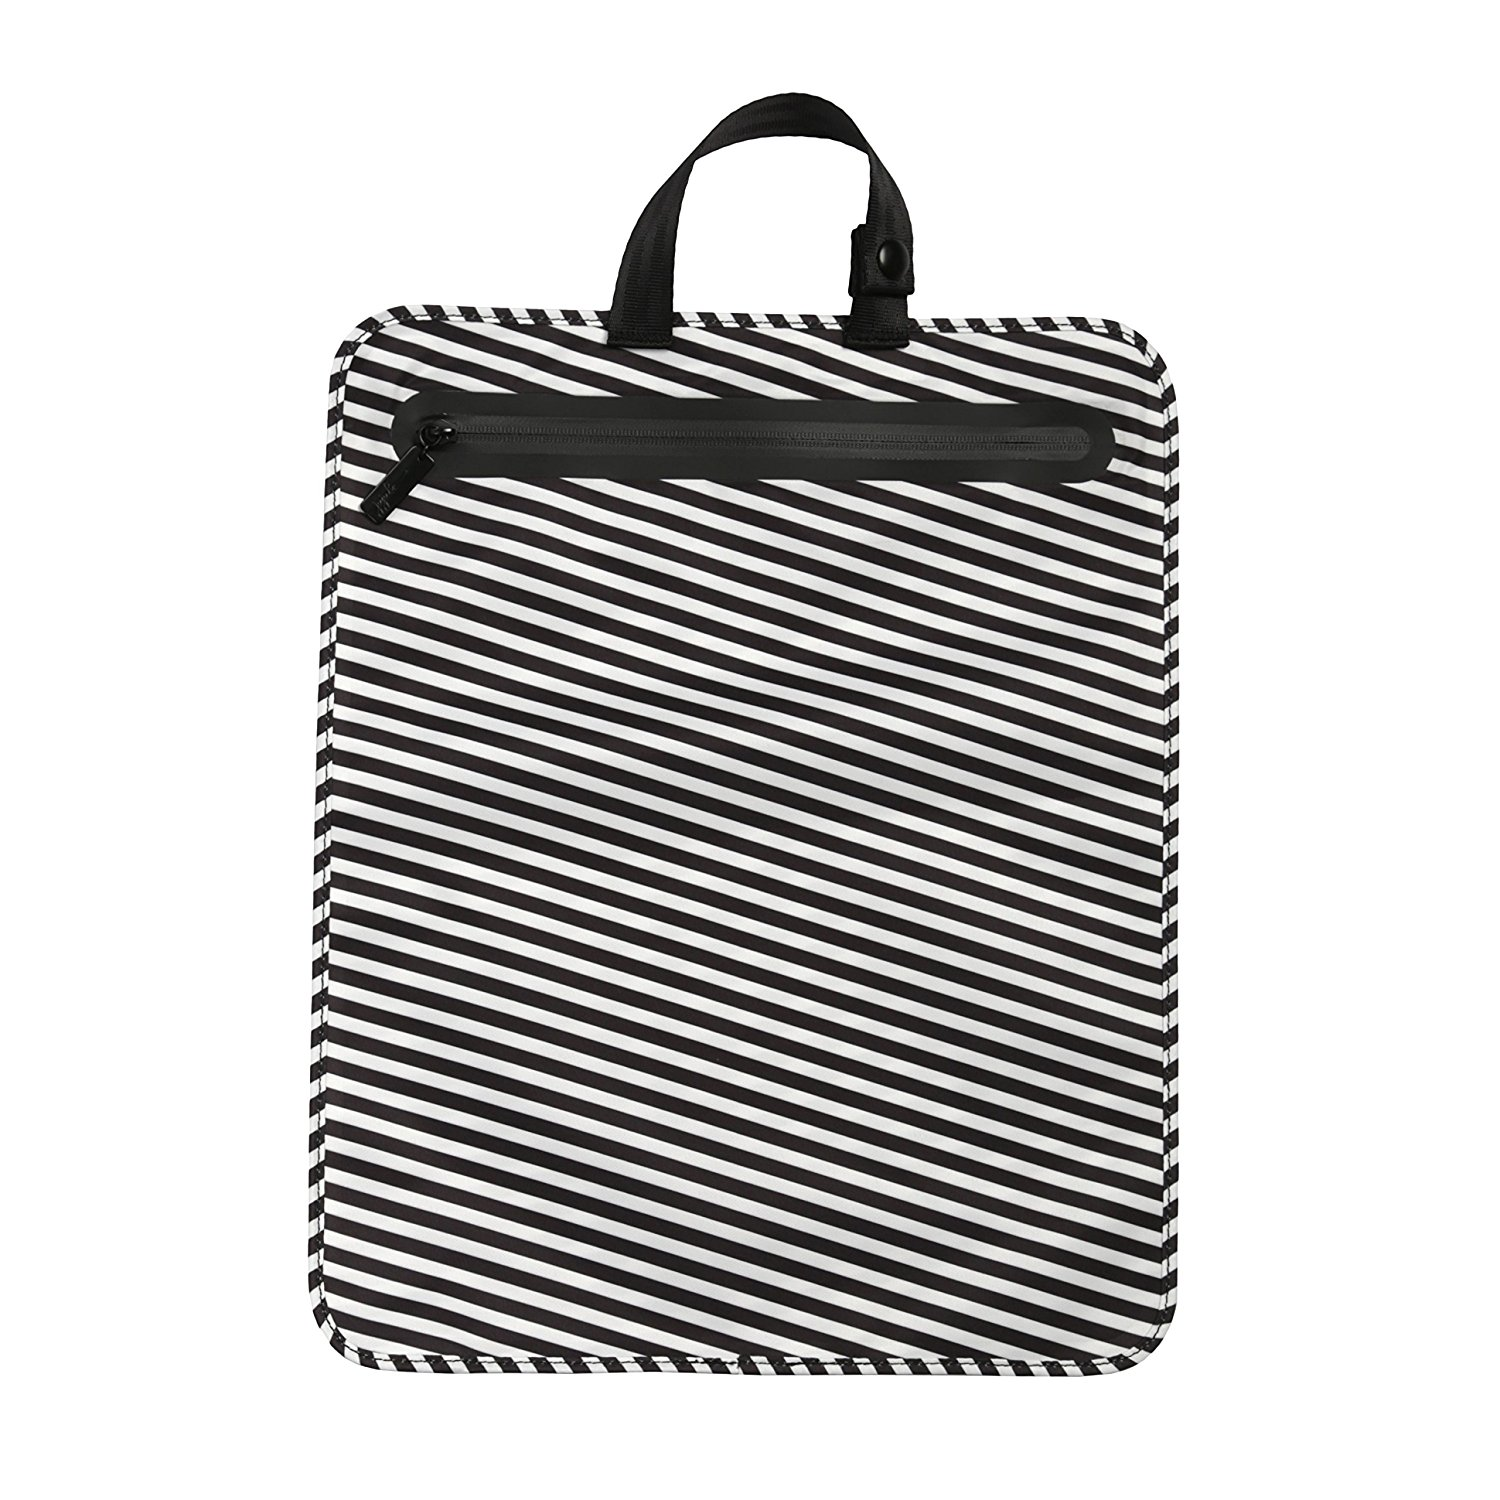 Onyx Collection Be Dry Premium Wet Bag, Black Magic, Water resistant with tight sealed seams to prevent leaks By Ju-Ju-Be